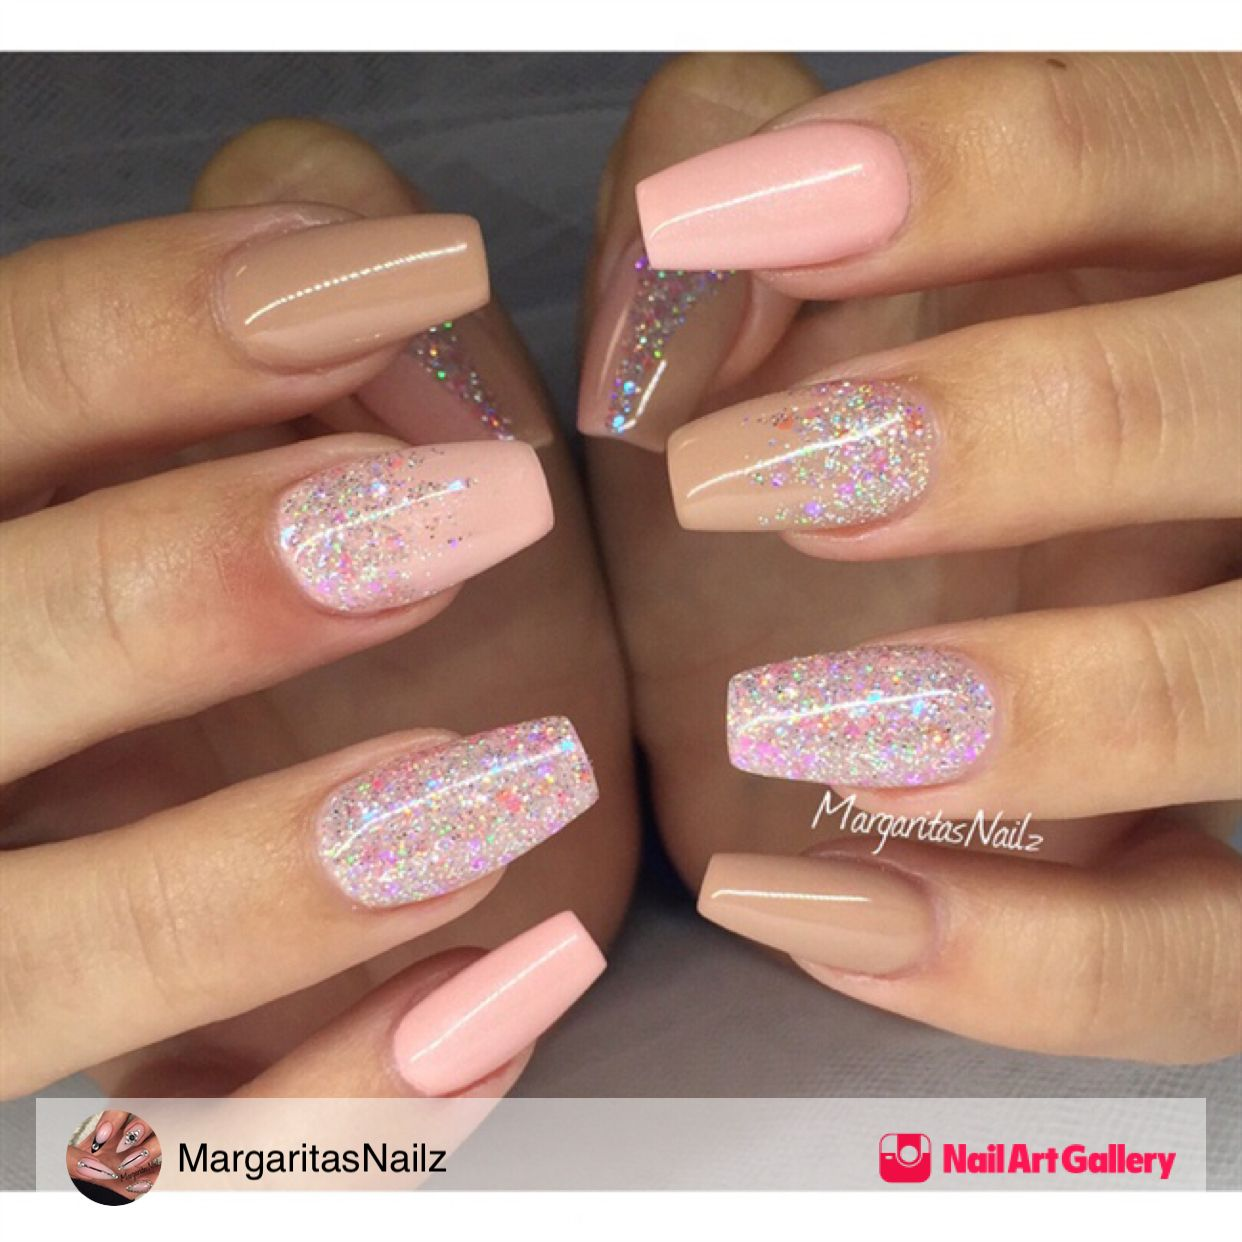 Nude And Glitter Nails By Margaritasnailz Via Nail Art Gallery